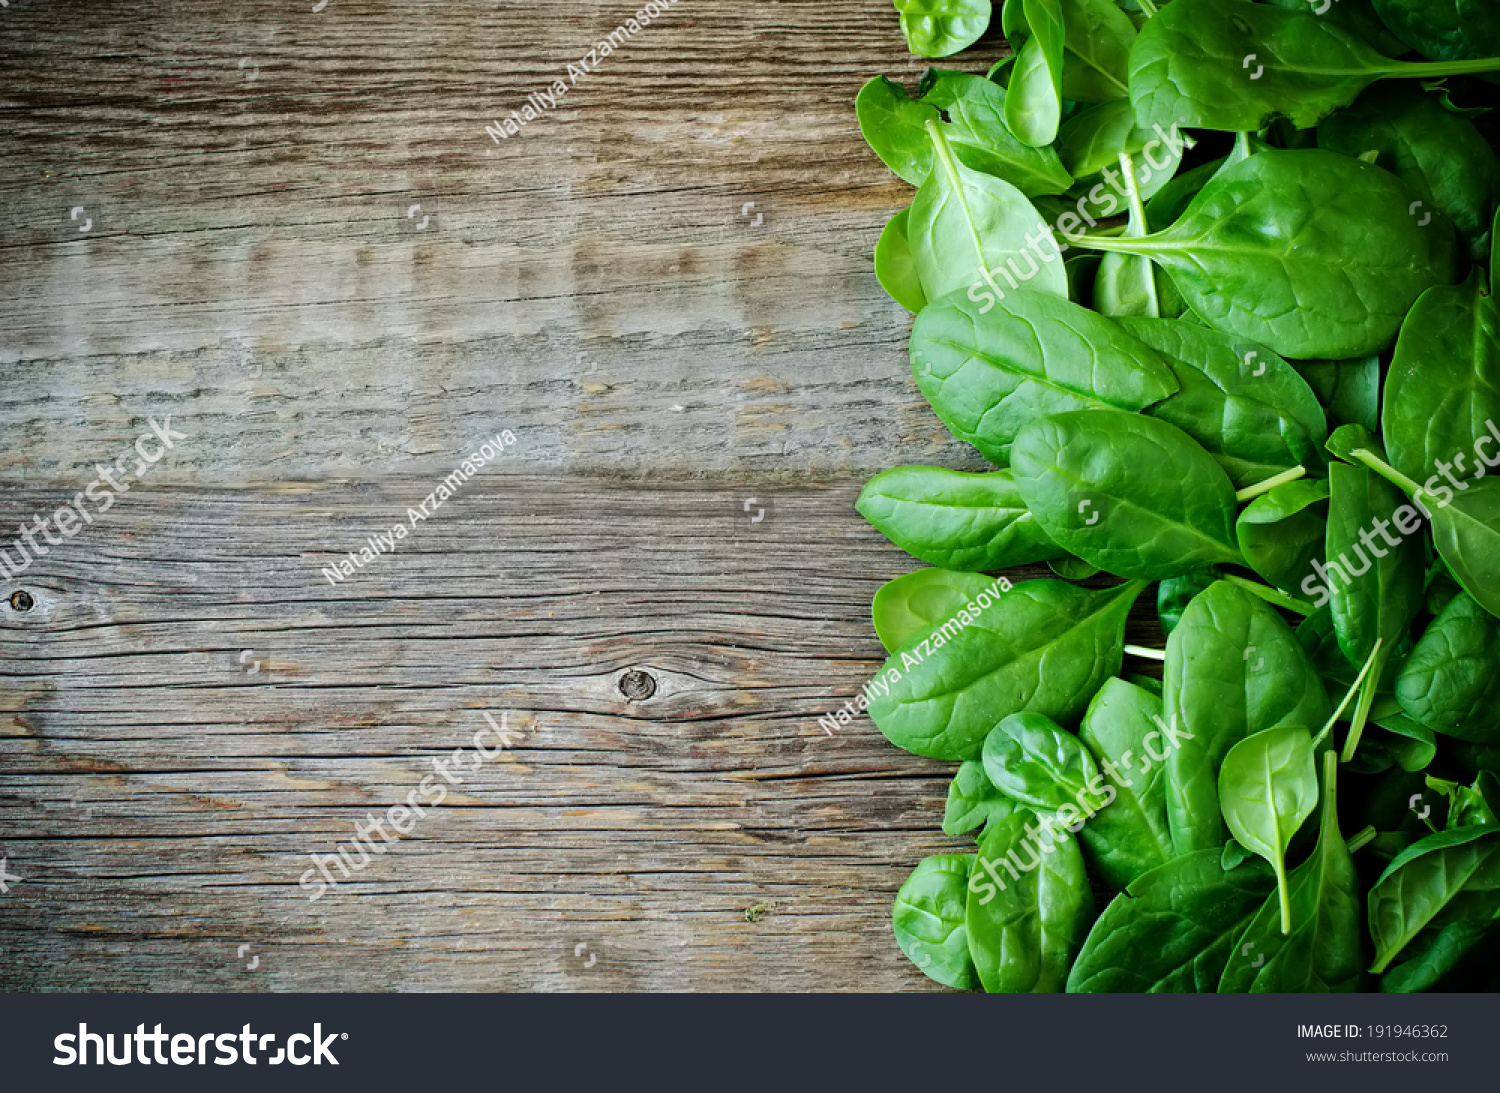 Bunch Spinach Leaves On Dark Wood Stock Photo 191946362 ...